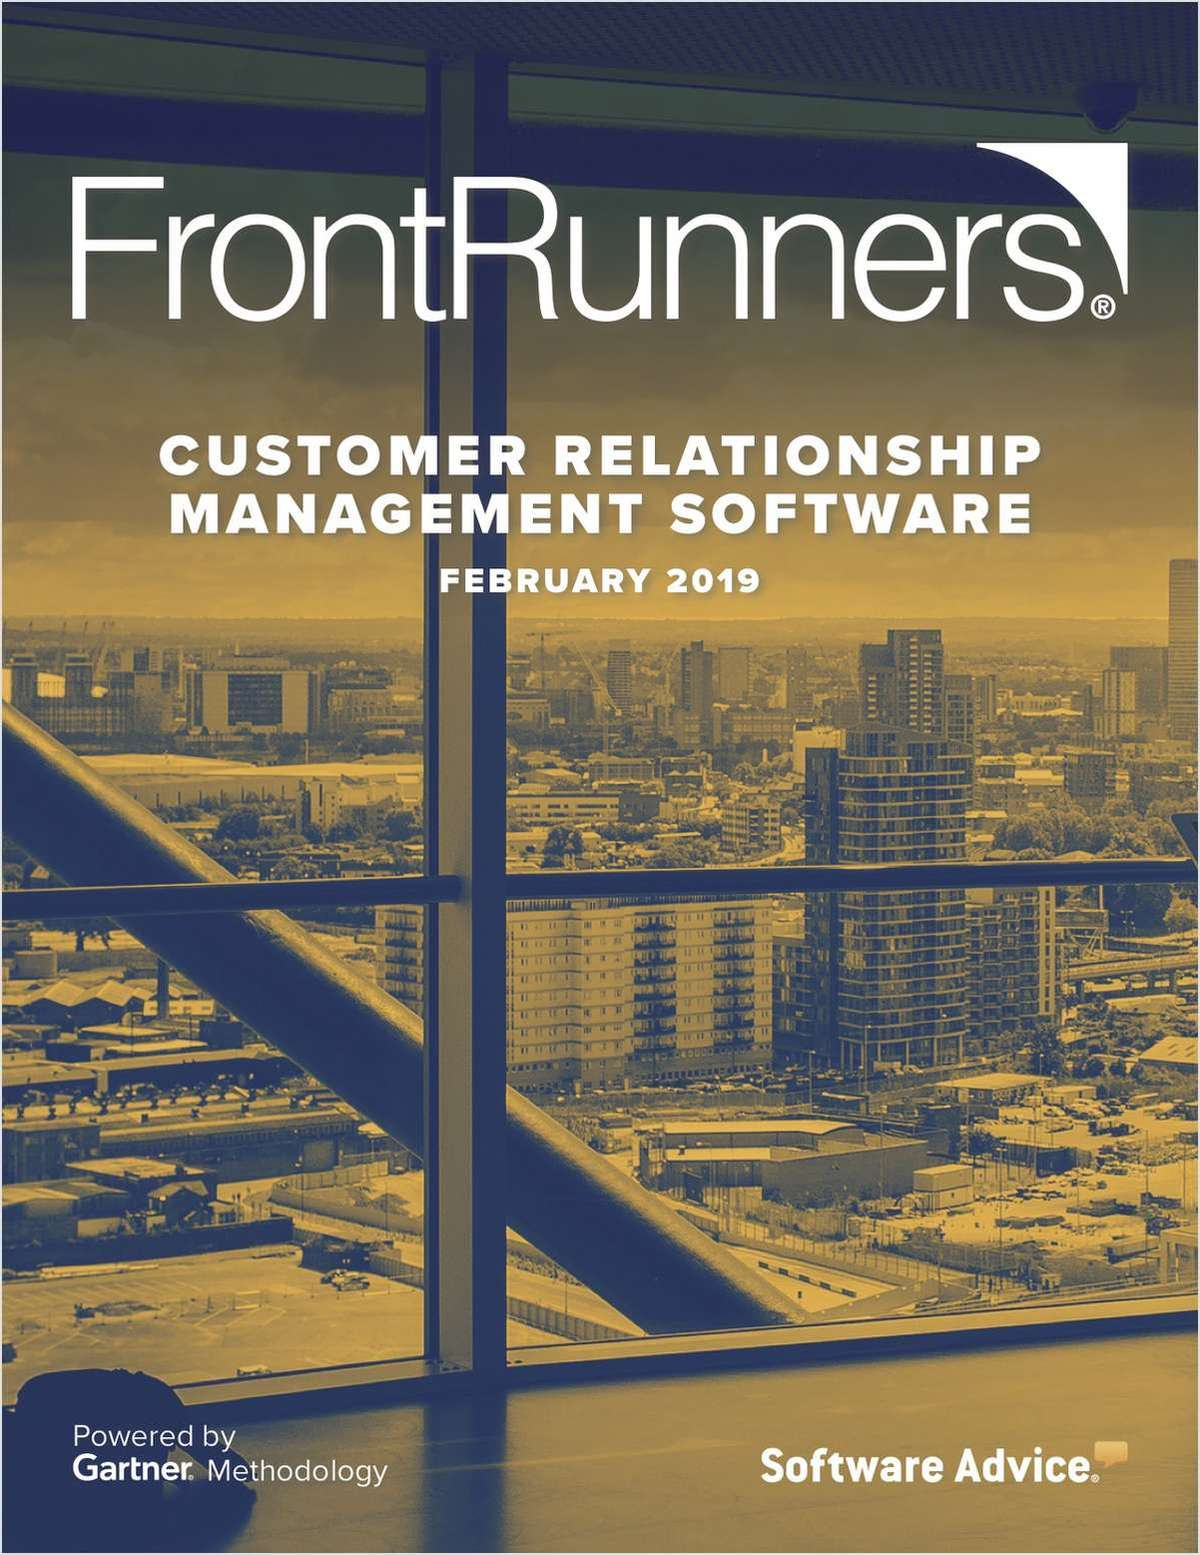 Top Rated FrontRunners for 2019 Customer Relationship Management Software